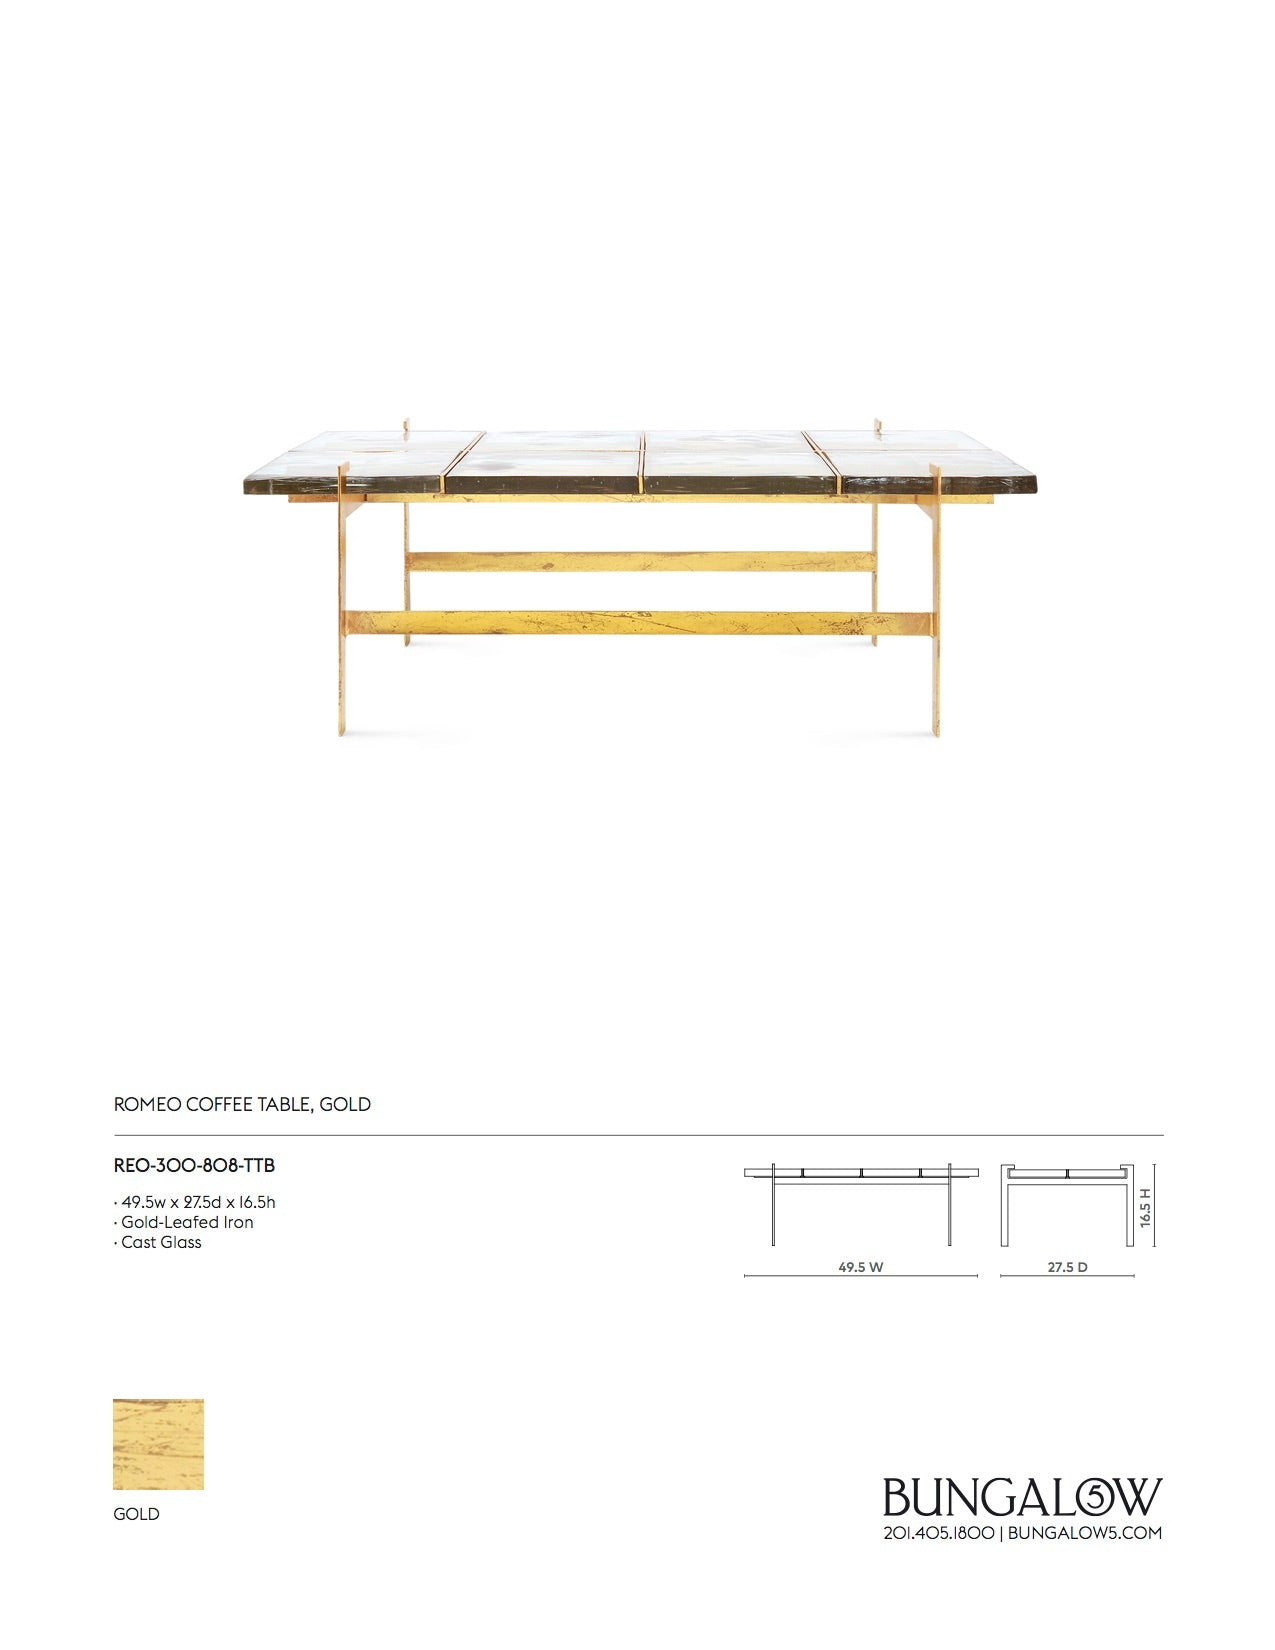 Bungalow 5 Romeo Coffee Table Gold Tearsheet